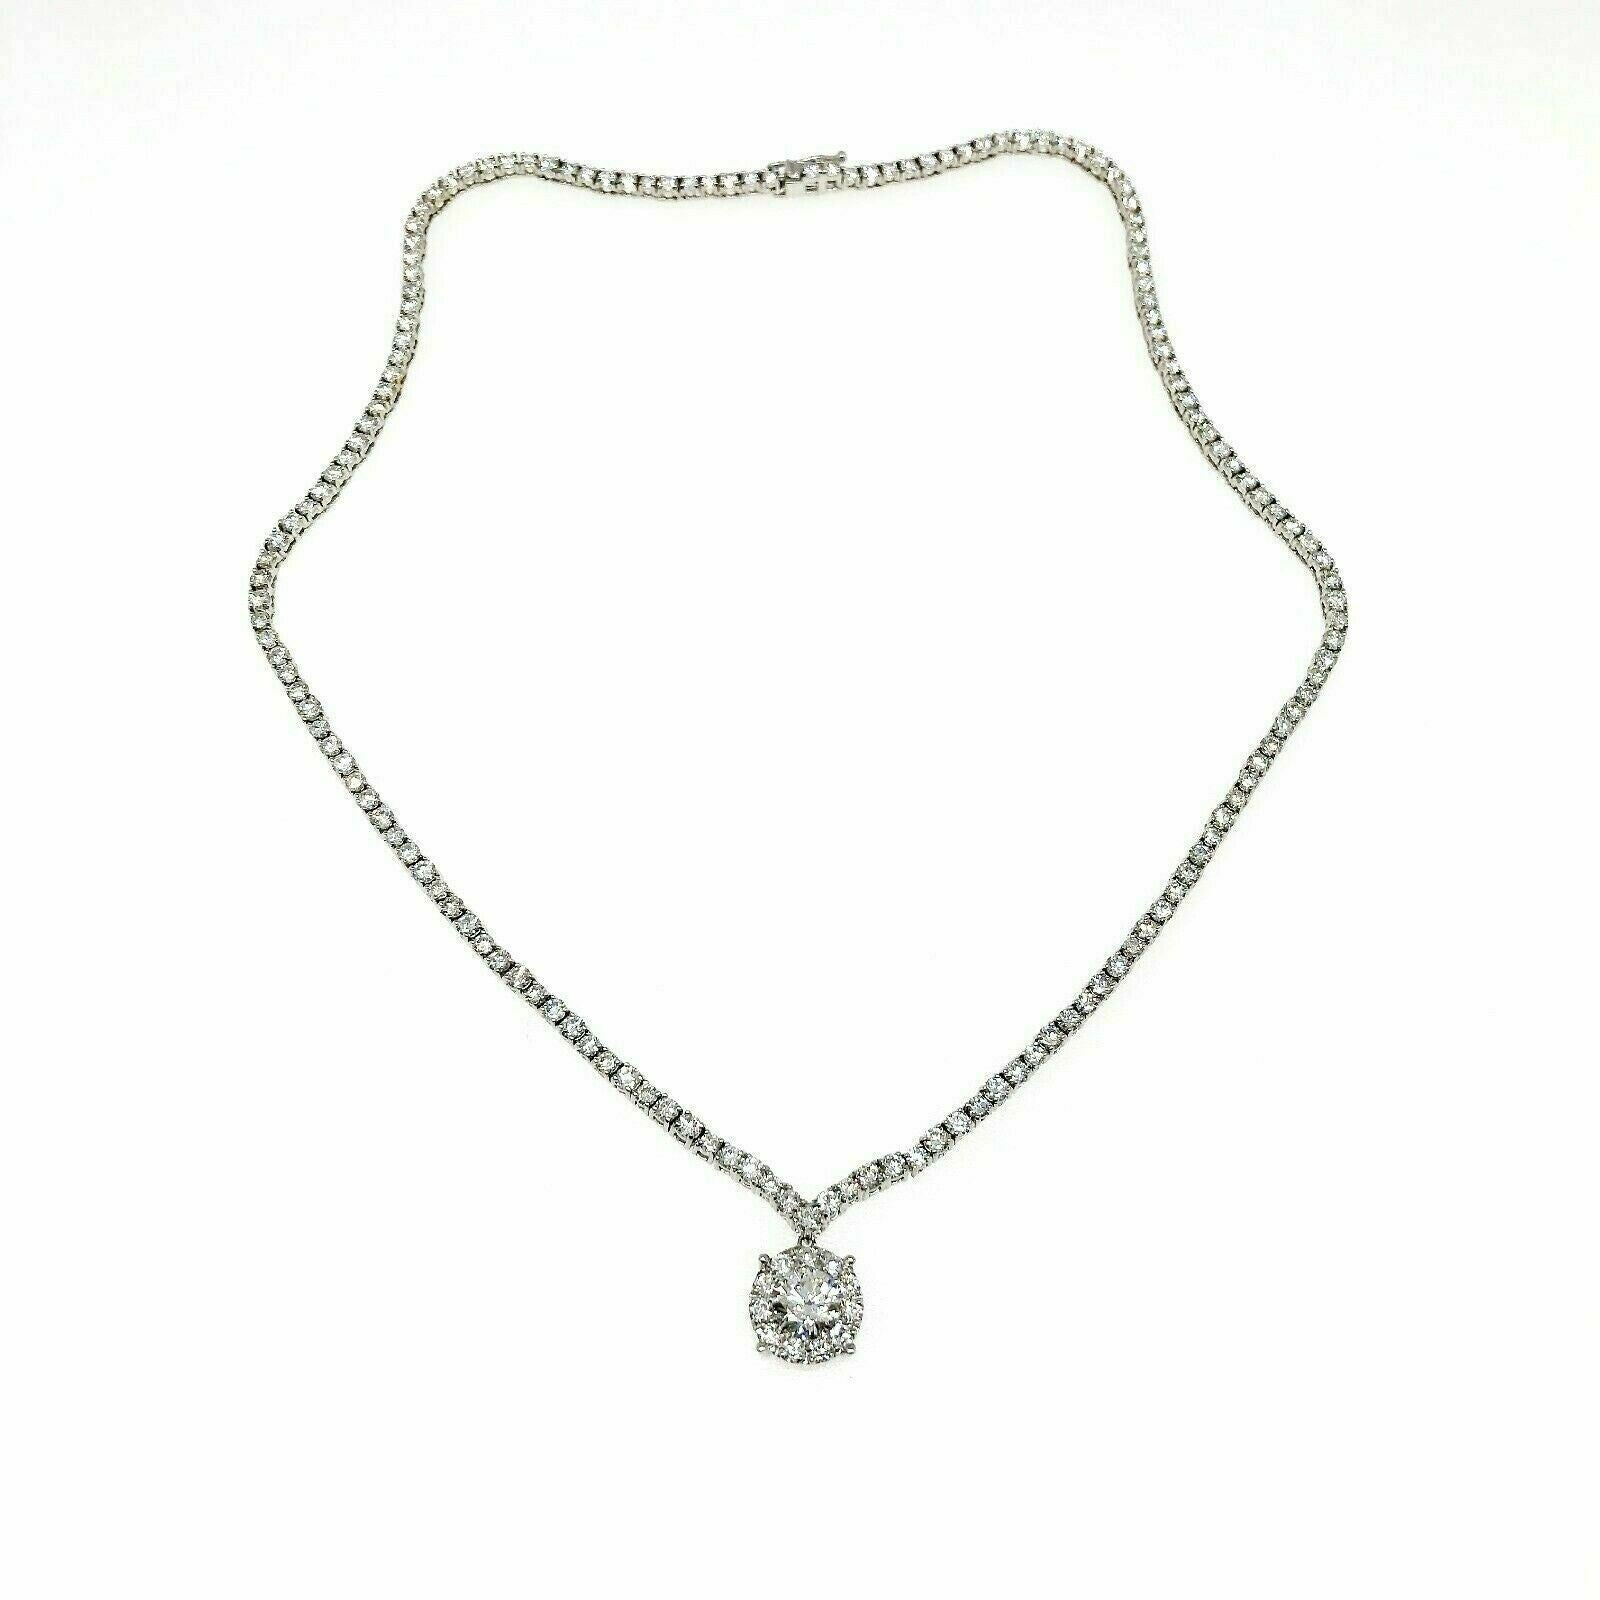 10.84 Carats t.w. Diamond 18K Gold Diamond Tennis Necklace w 1.06 Carats Center